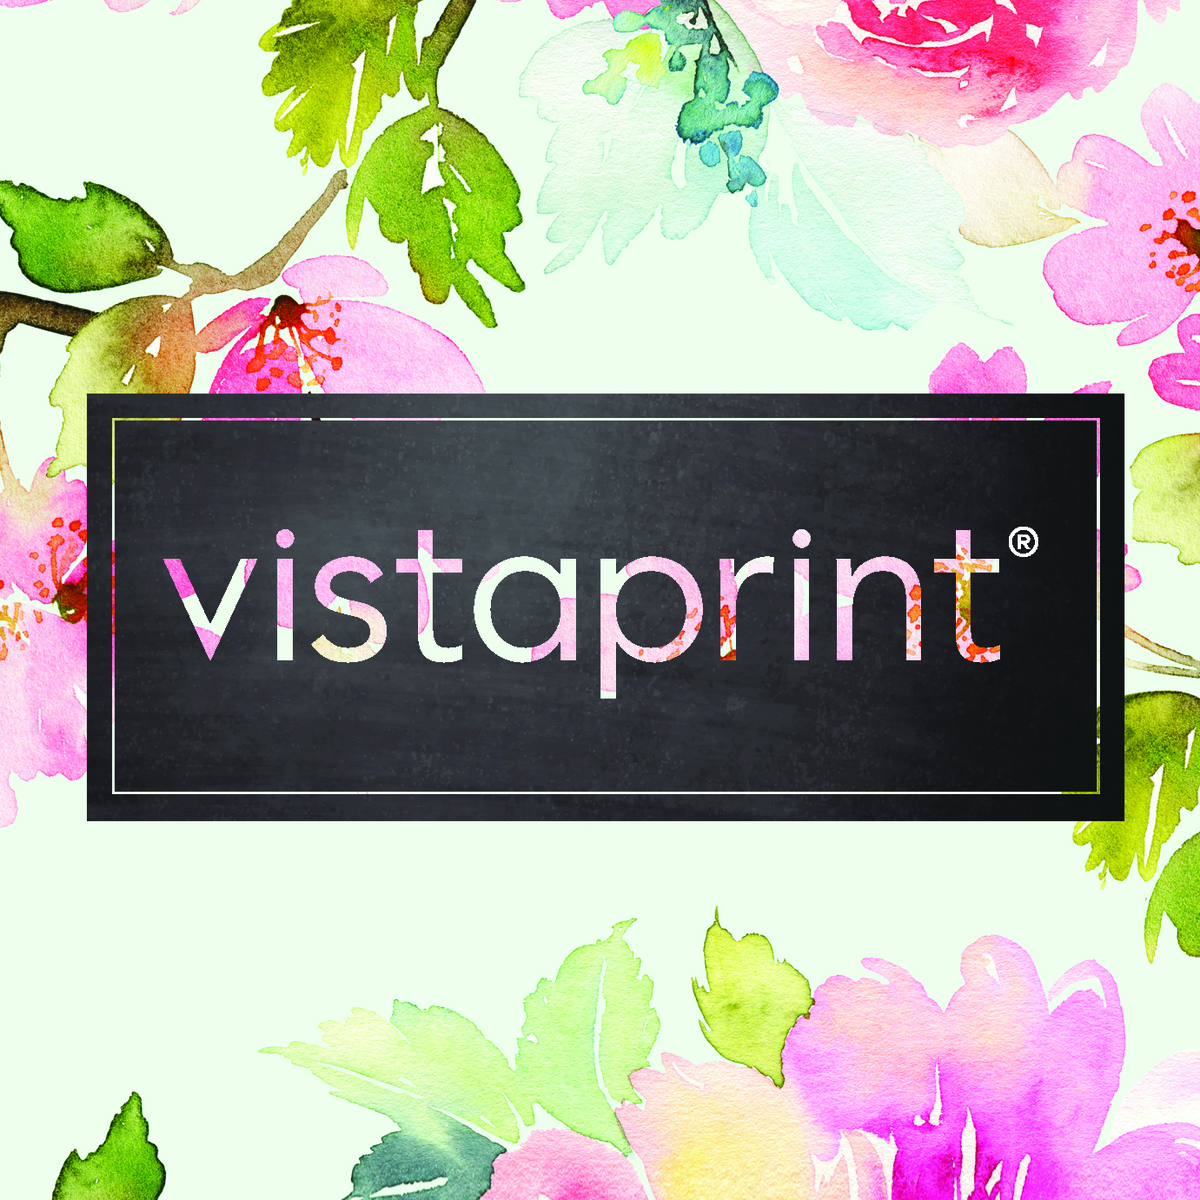 Vistaprint Invitations Wedding: Vistaprint, Wedding Invitations, Nationwide